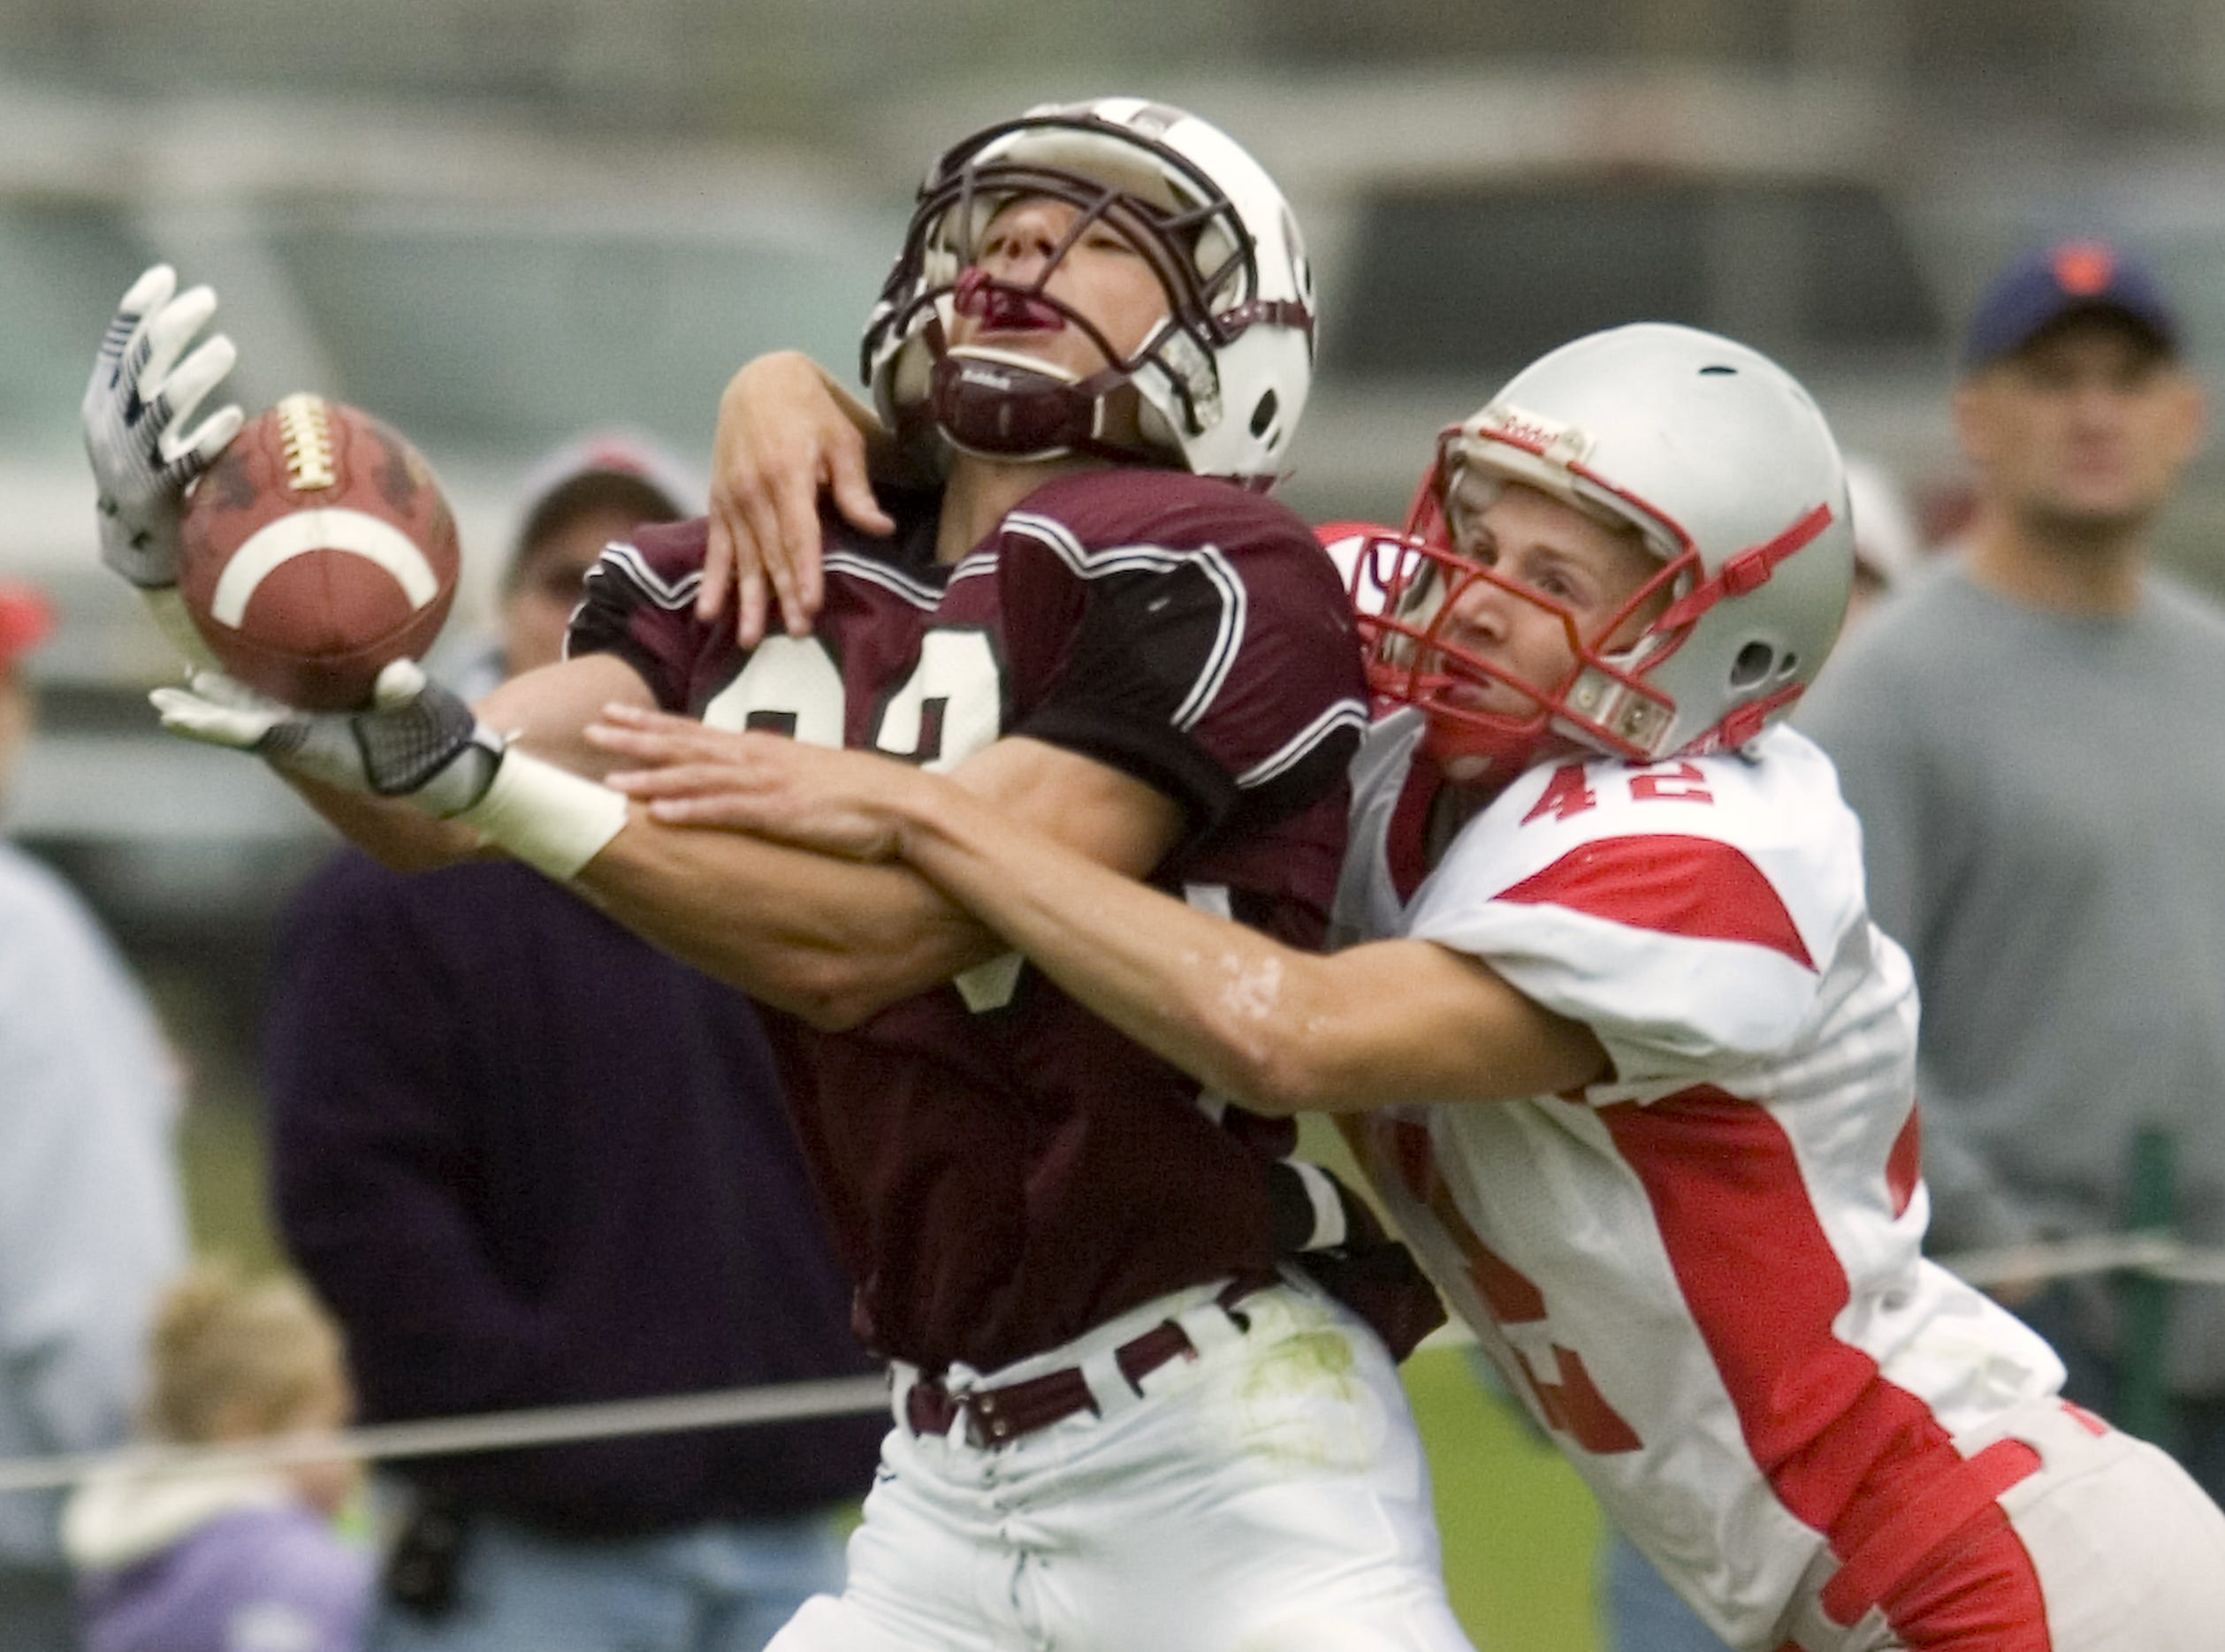 From 2009: Chenango Valley's Joe Bleil, right, tries to prevent the completion of the touchdown pass to Johnson City's Troy Robinson in the second quarter of Saturday's game at Green Field. Bleil was called for the pass interference, which was declined by JC.